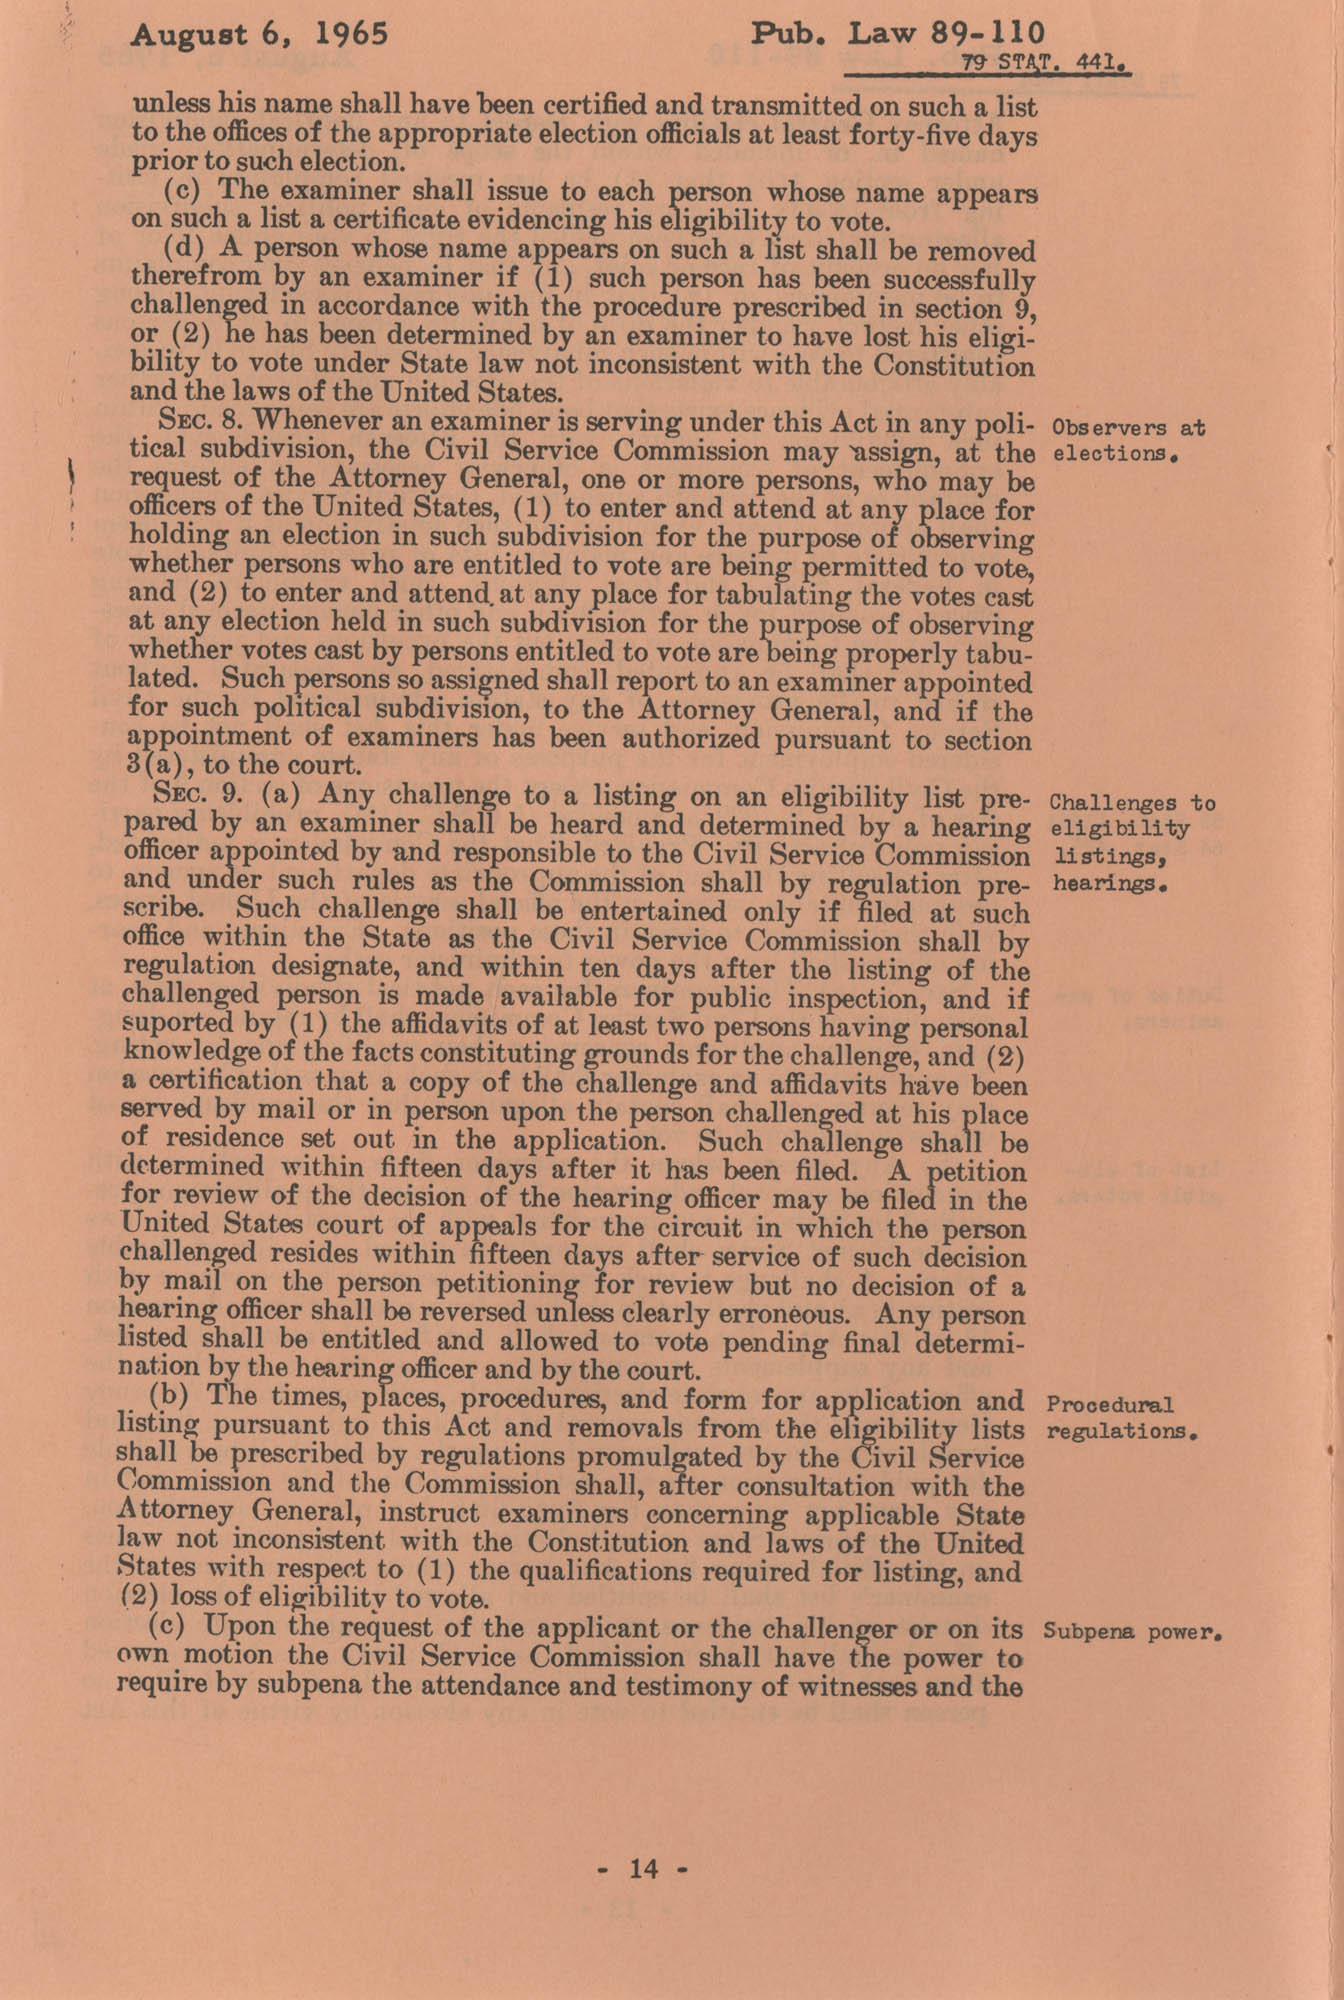 The Voting Rights Act of 1965, Page 14